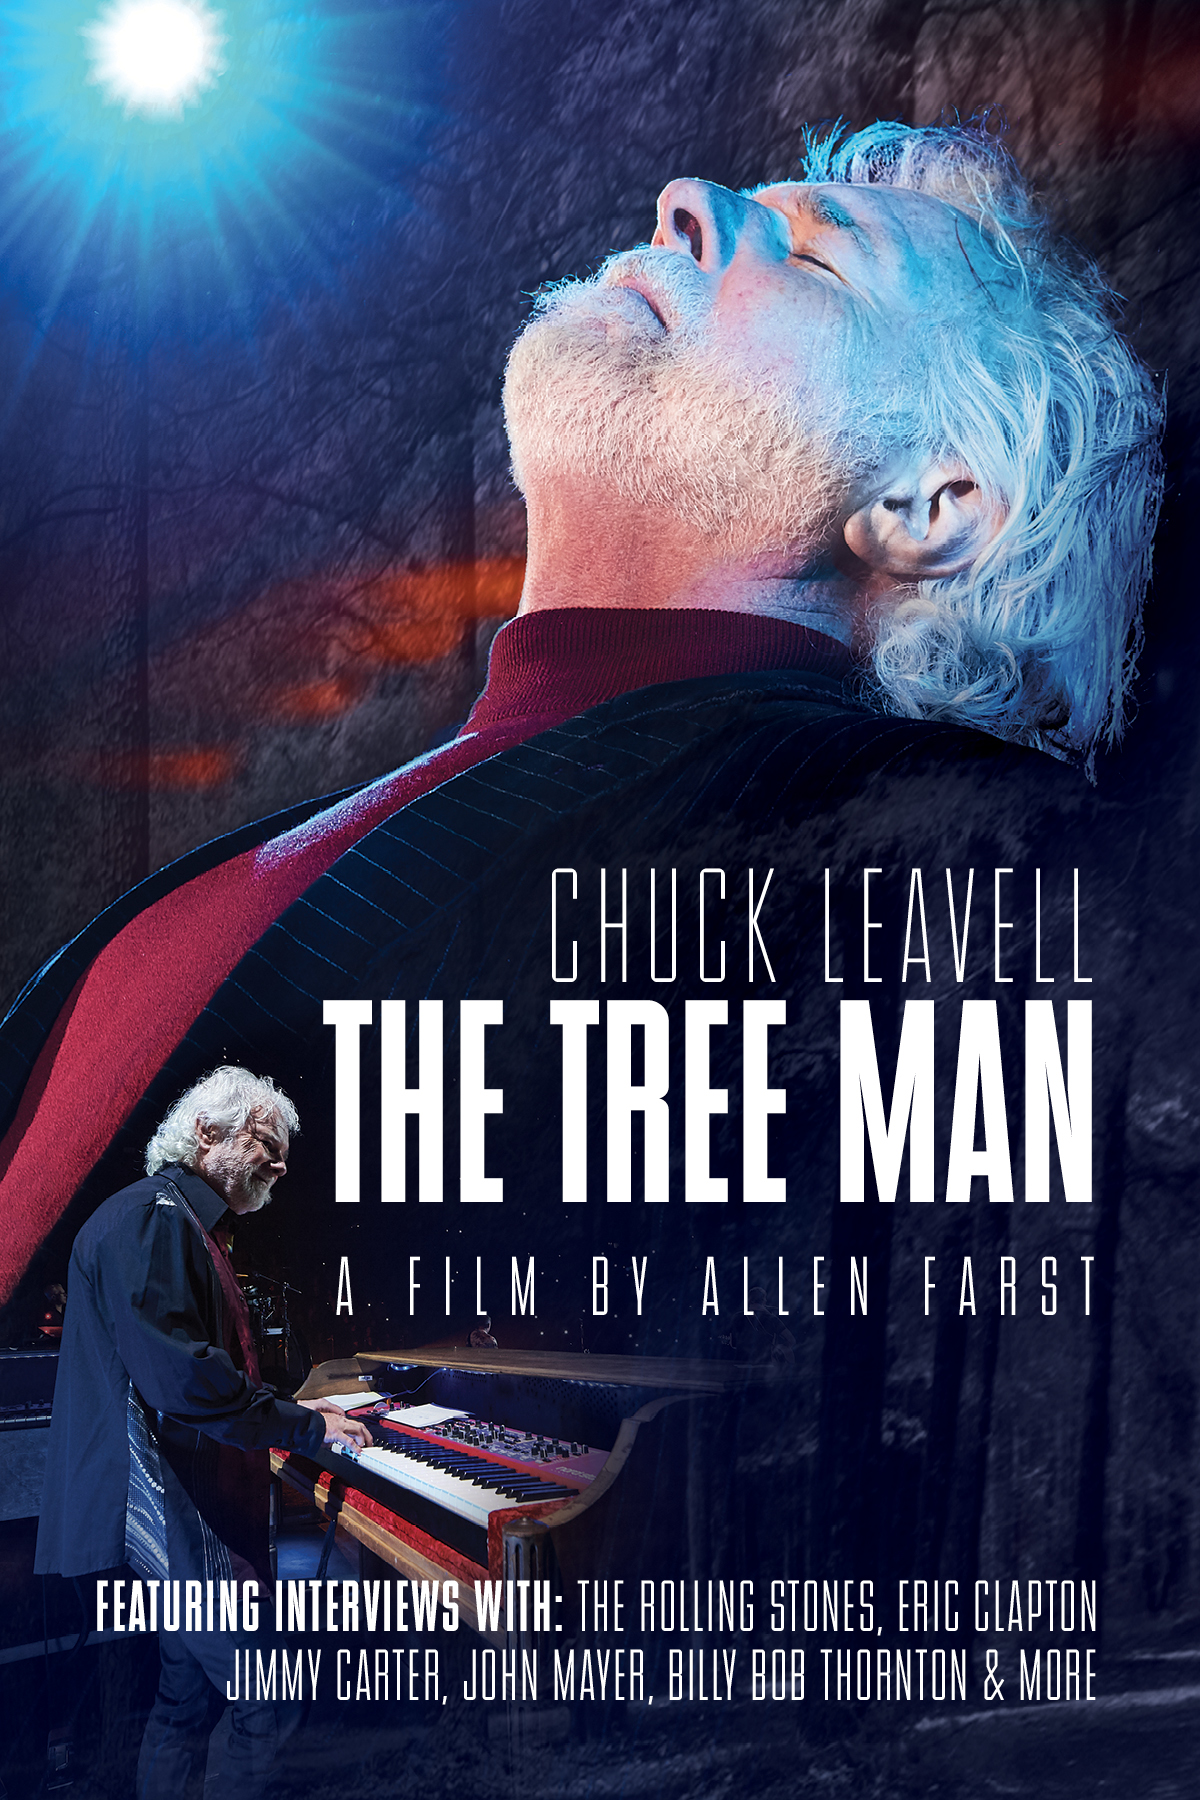 Chuck Leavell: The Tree Man Documentary